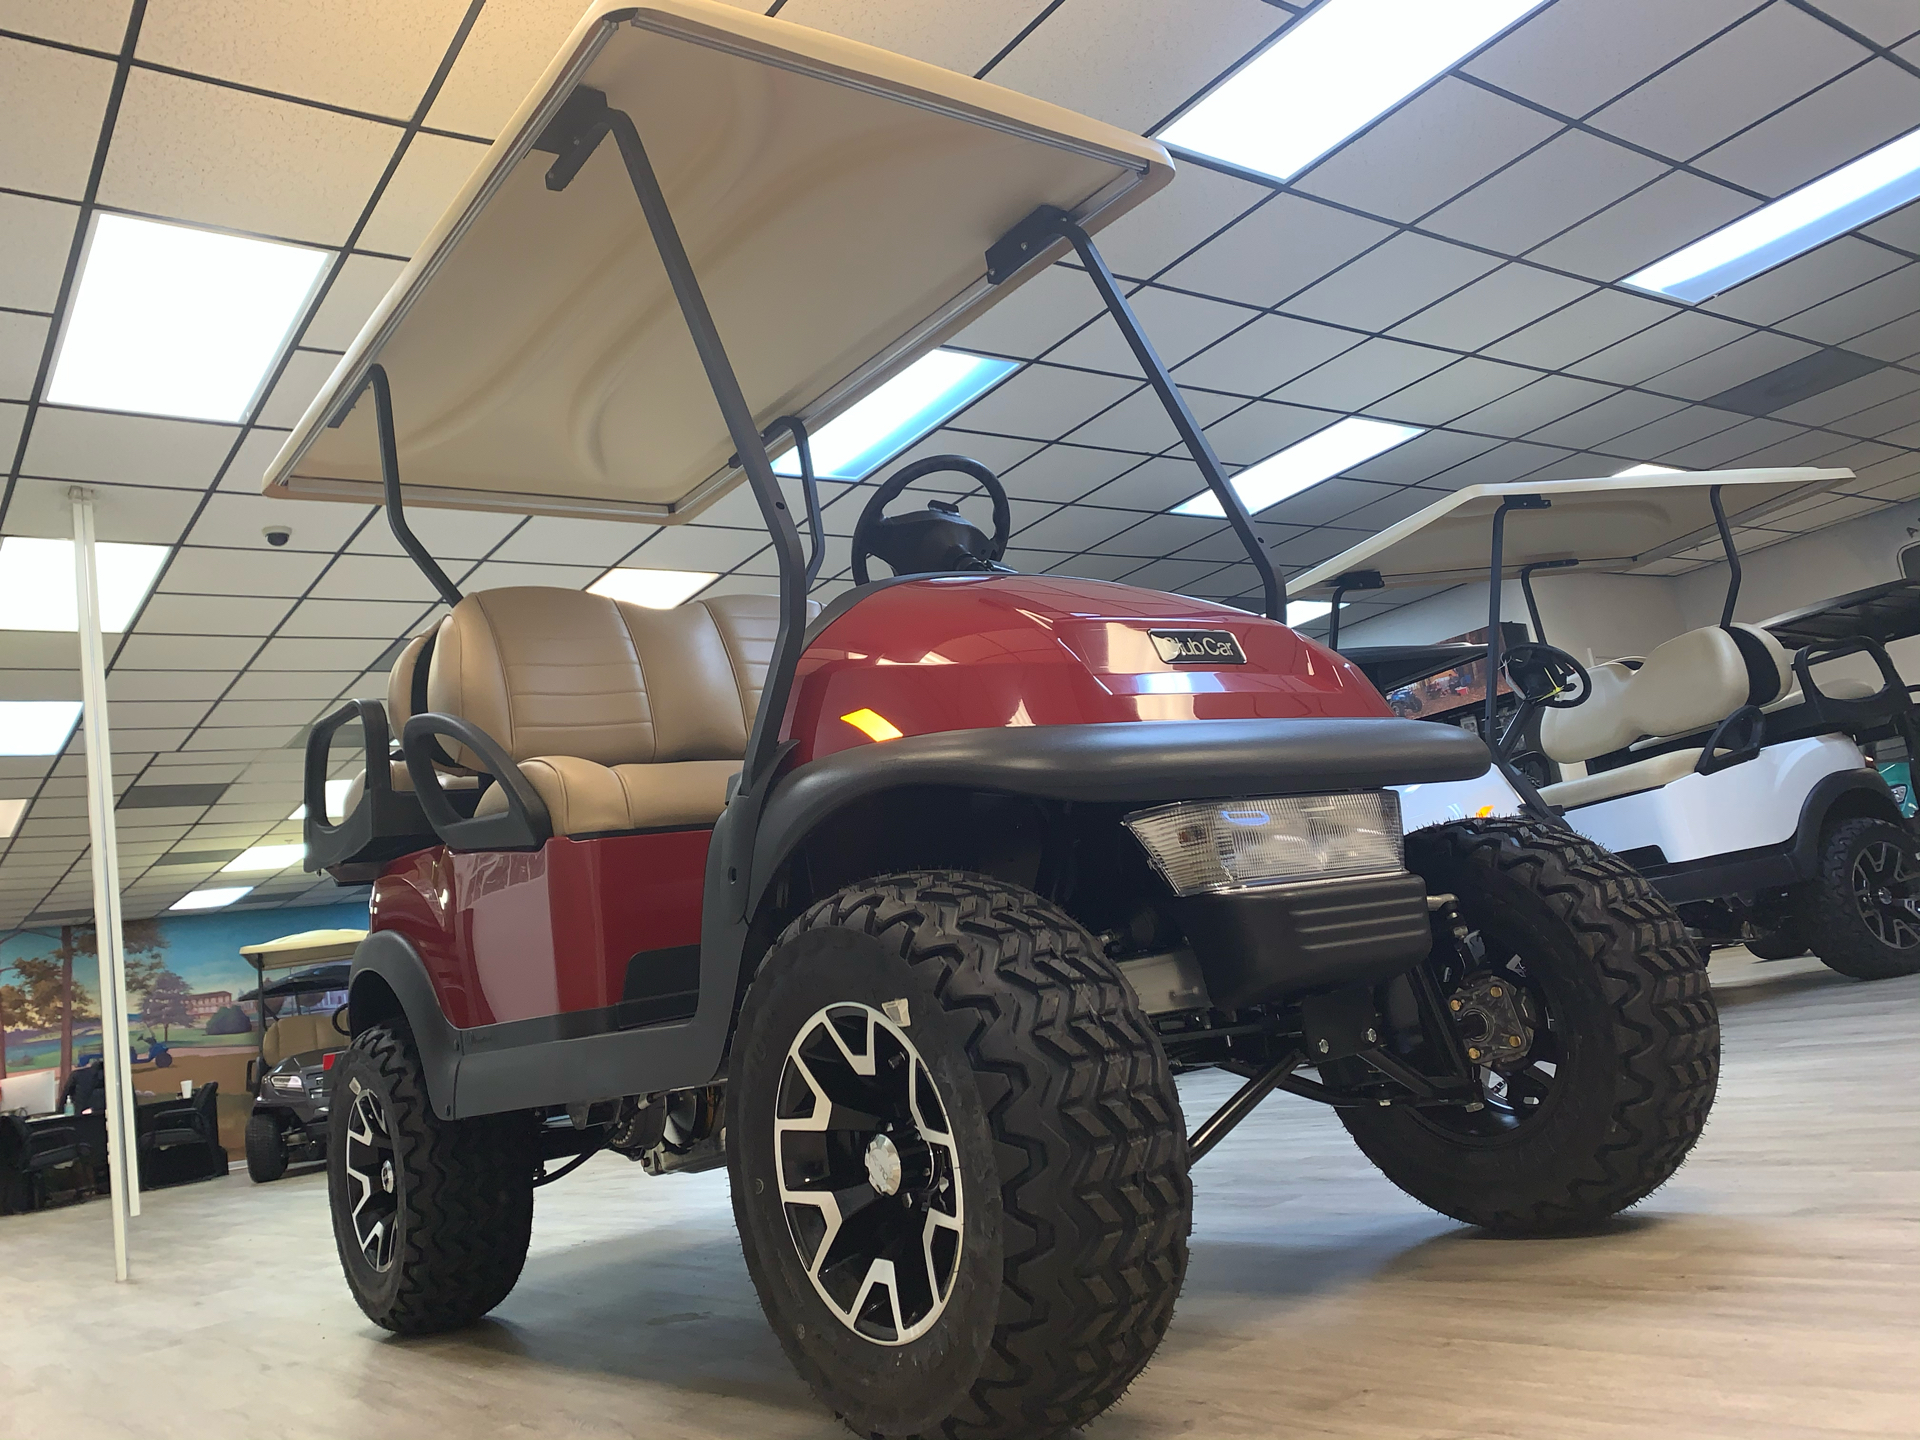 2021 Club Car V4L Gas in Canton, Georgia - Photo 12